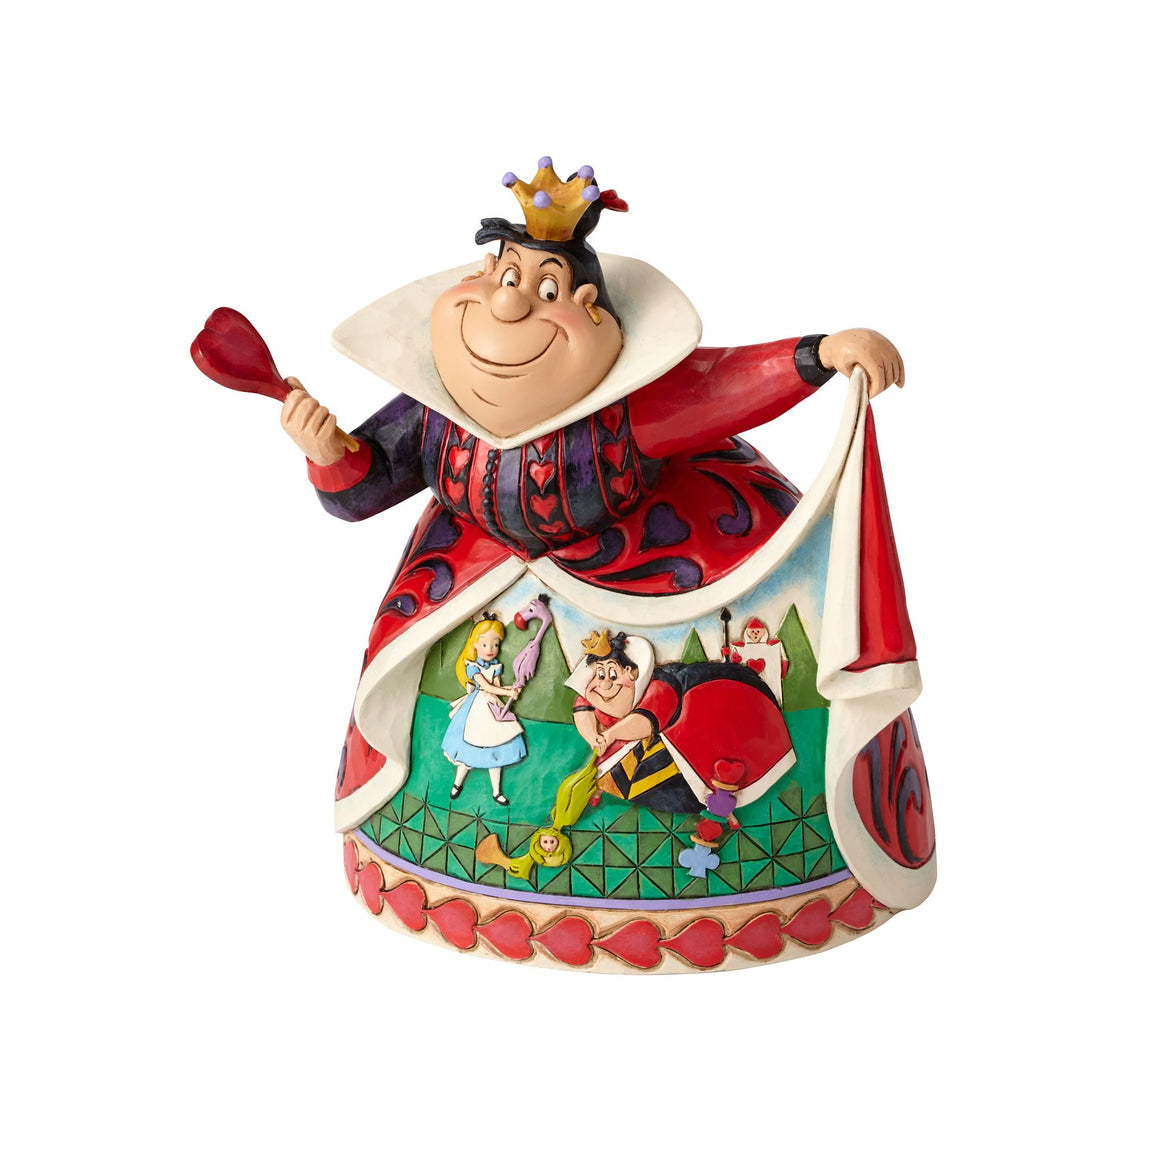 Disney Traditions by Jim Shore Royal Recreation - Queen of Hearts 65th Anniversary Piece